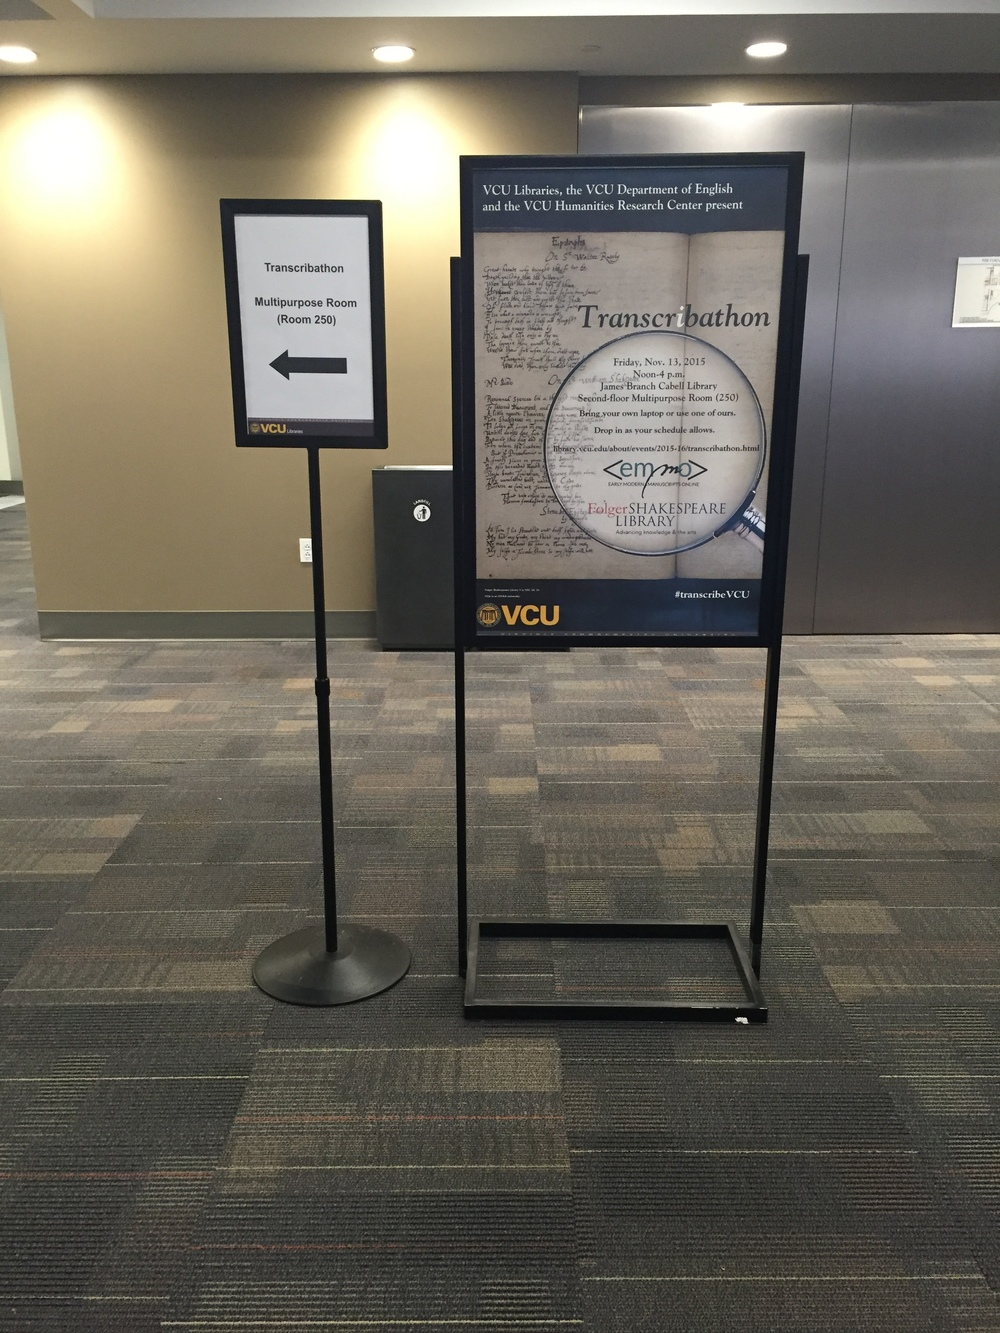 Thanks to VCU Libraries for creating such beautiful posters for the transcribathon.